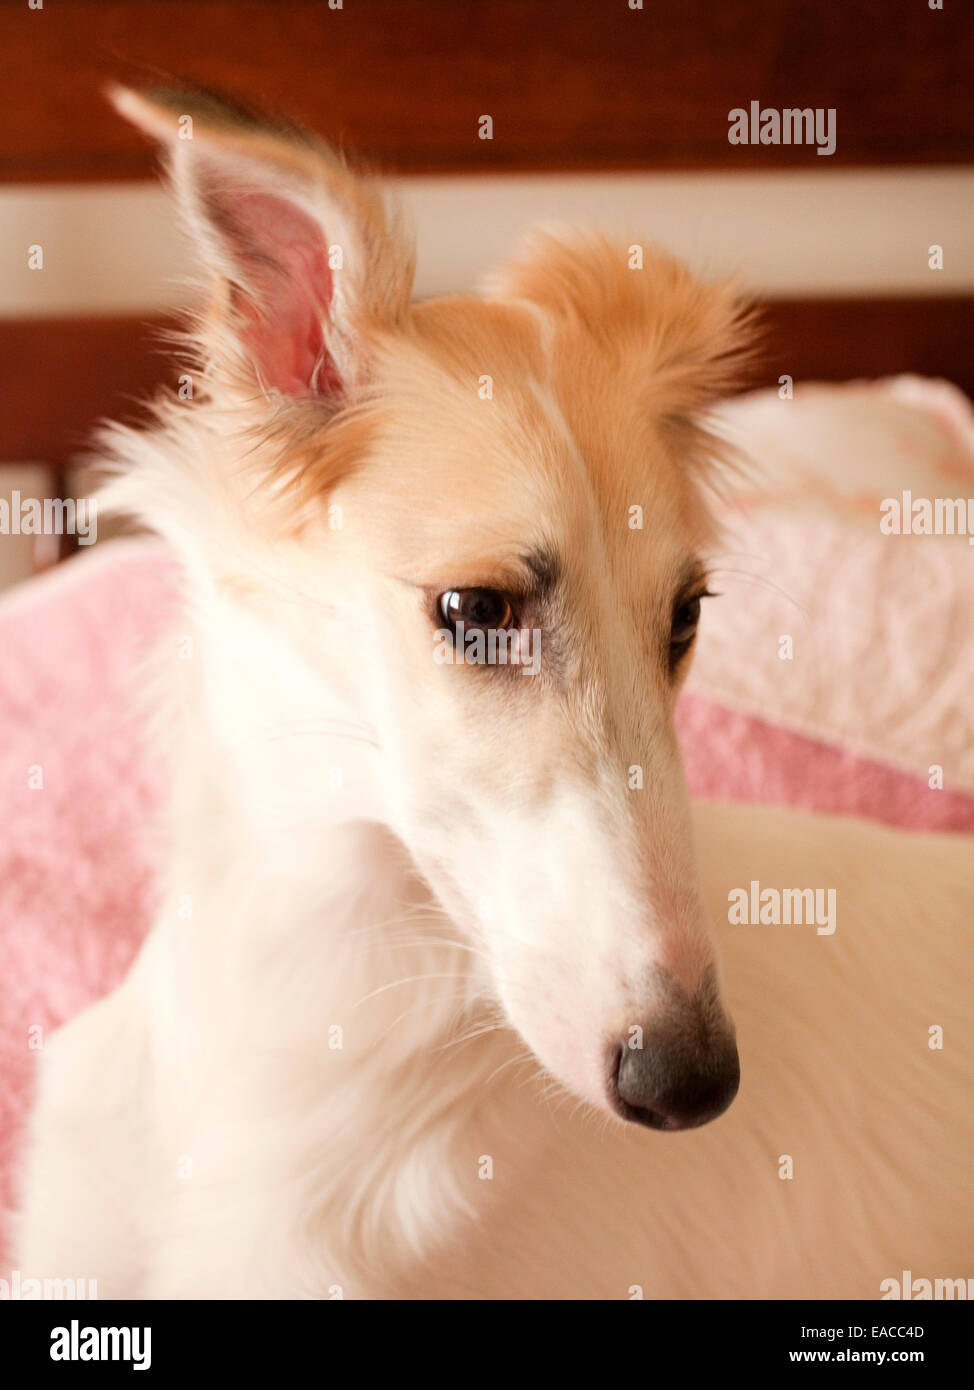 dog, pup, puppy - Stock Image